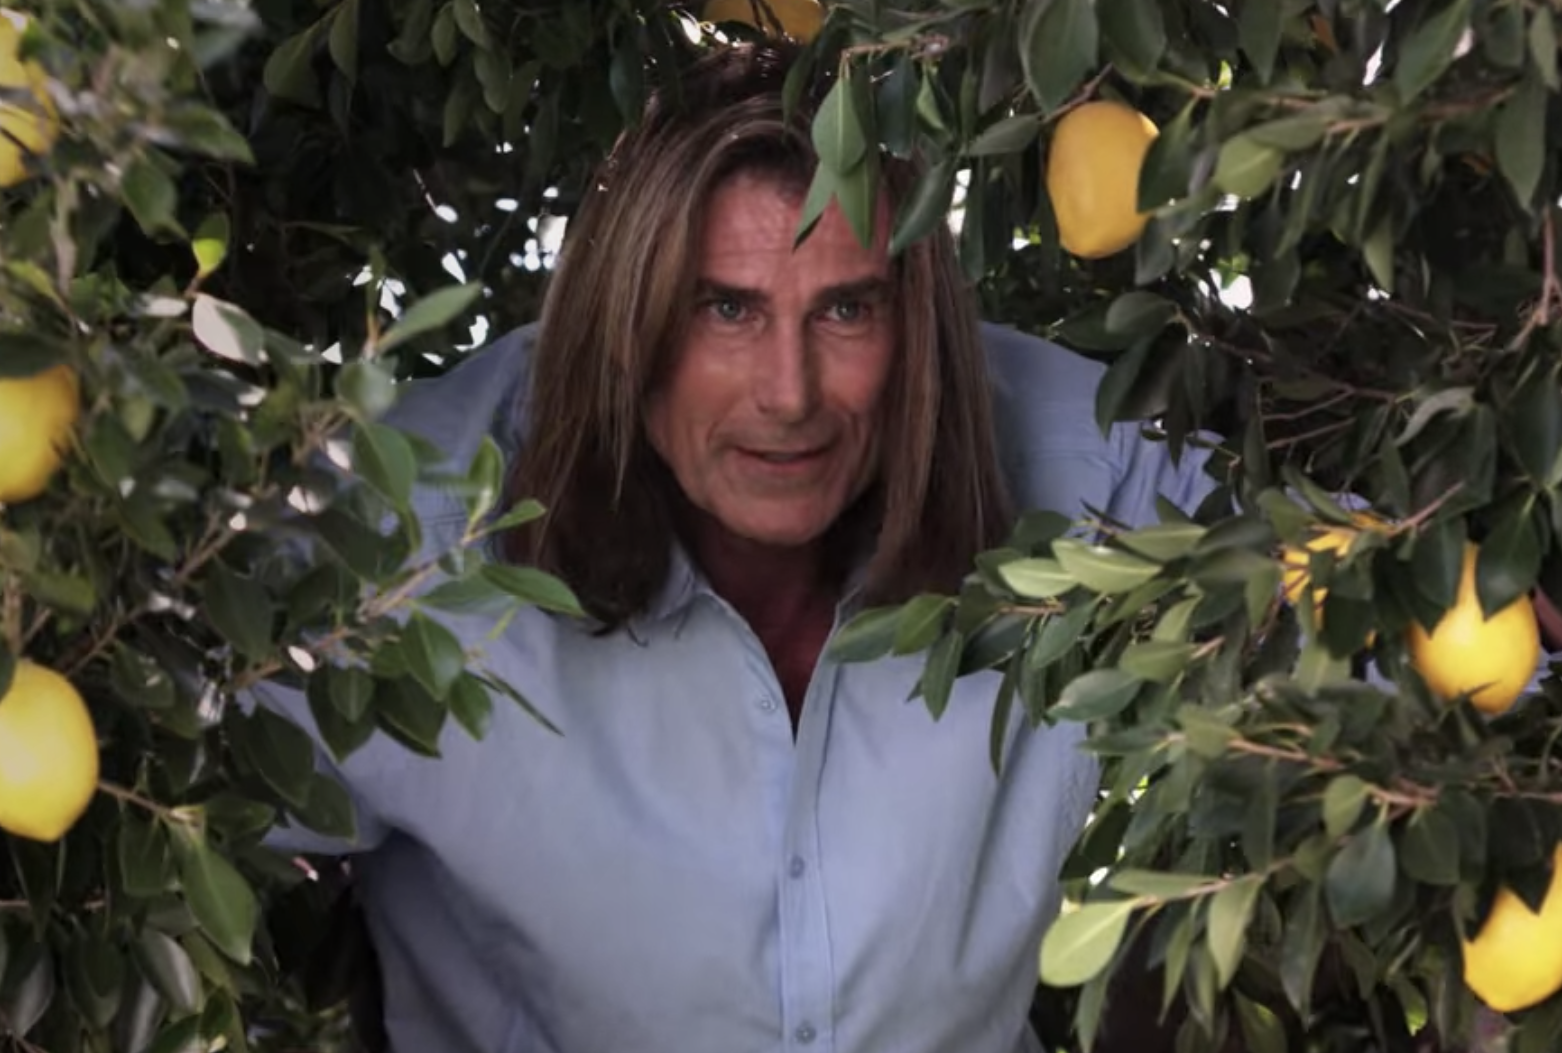 Fabio hiding in a lemon tree.